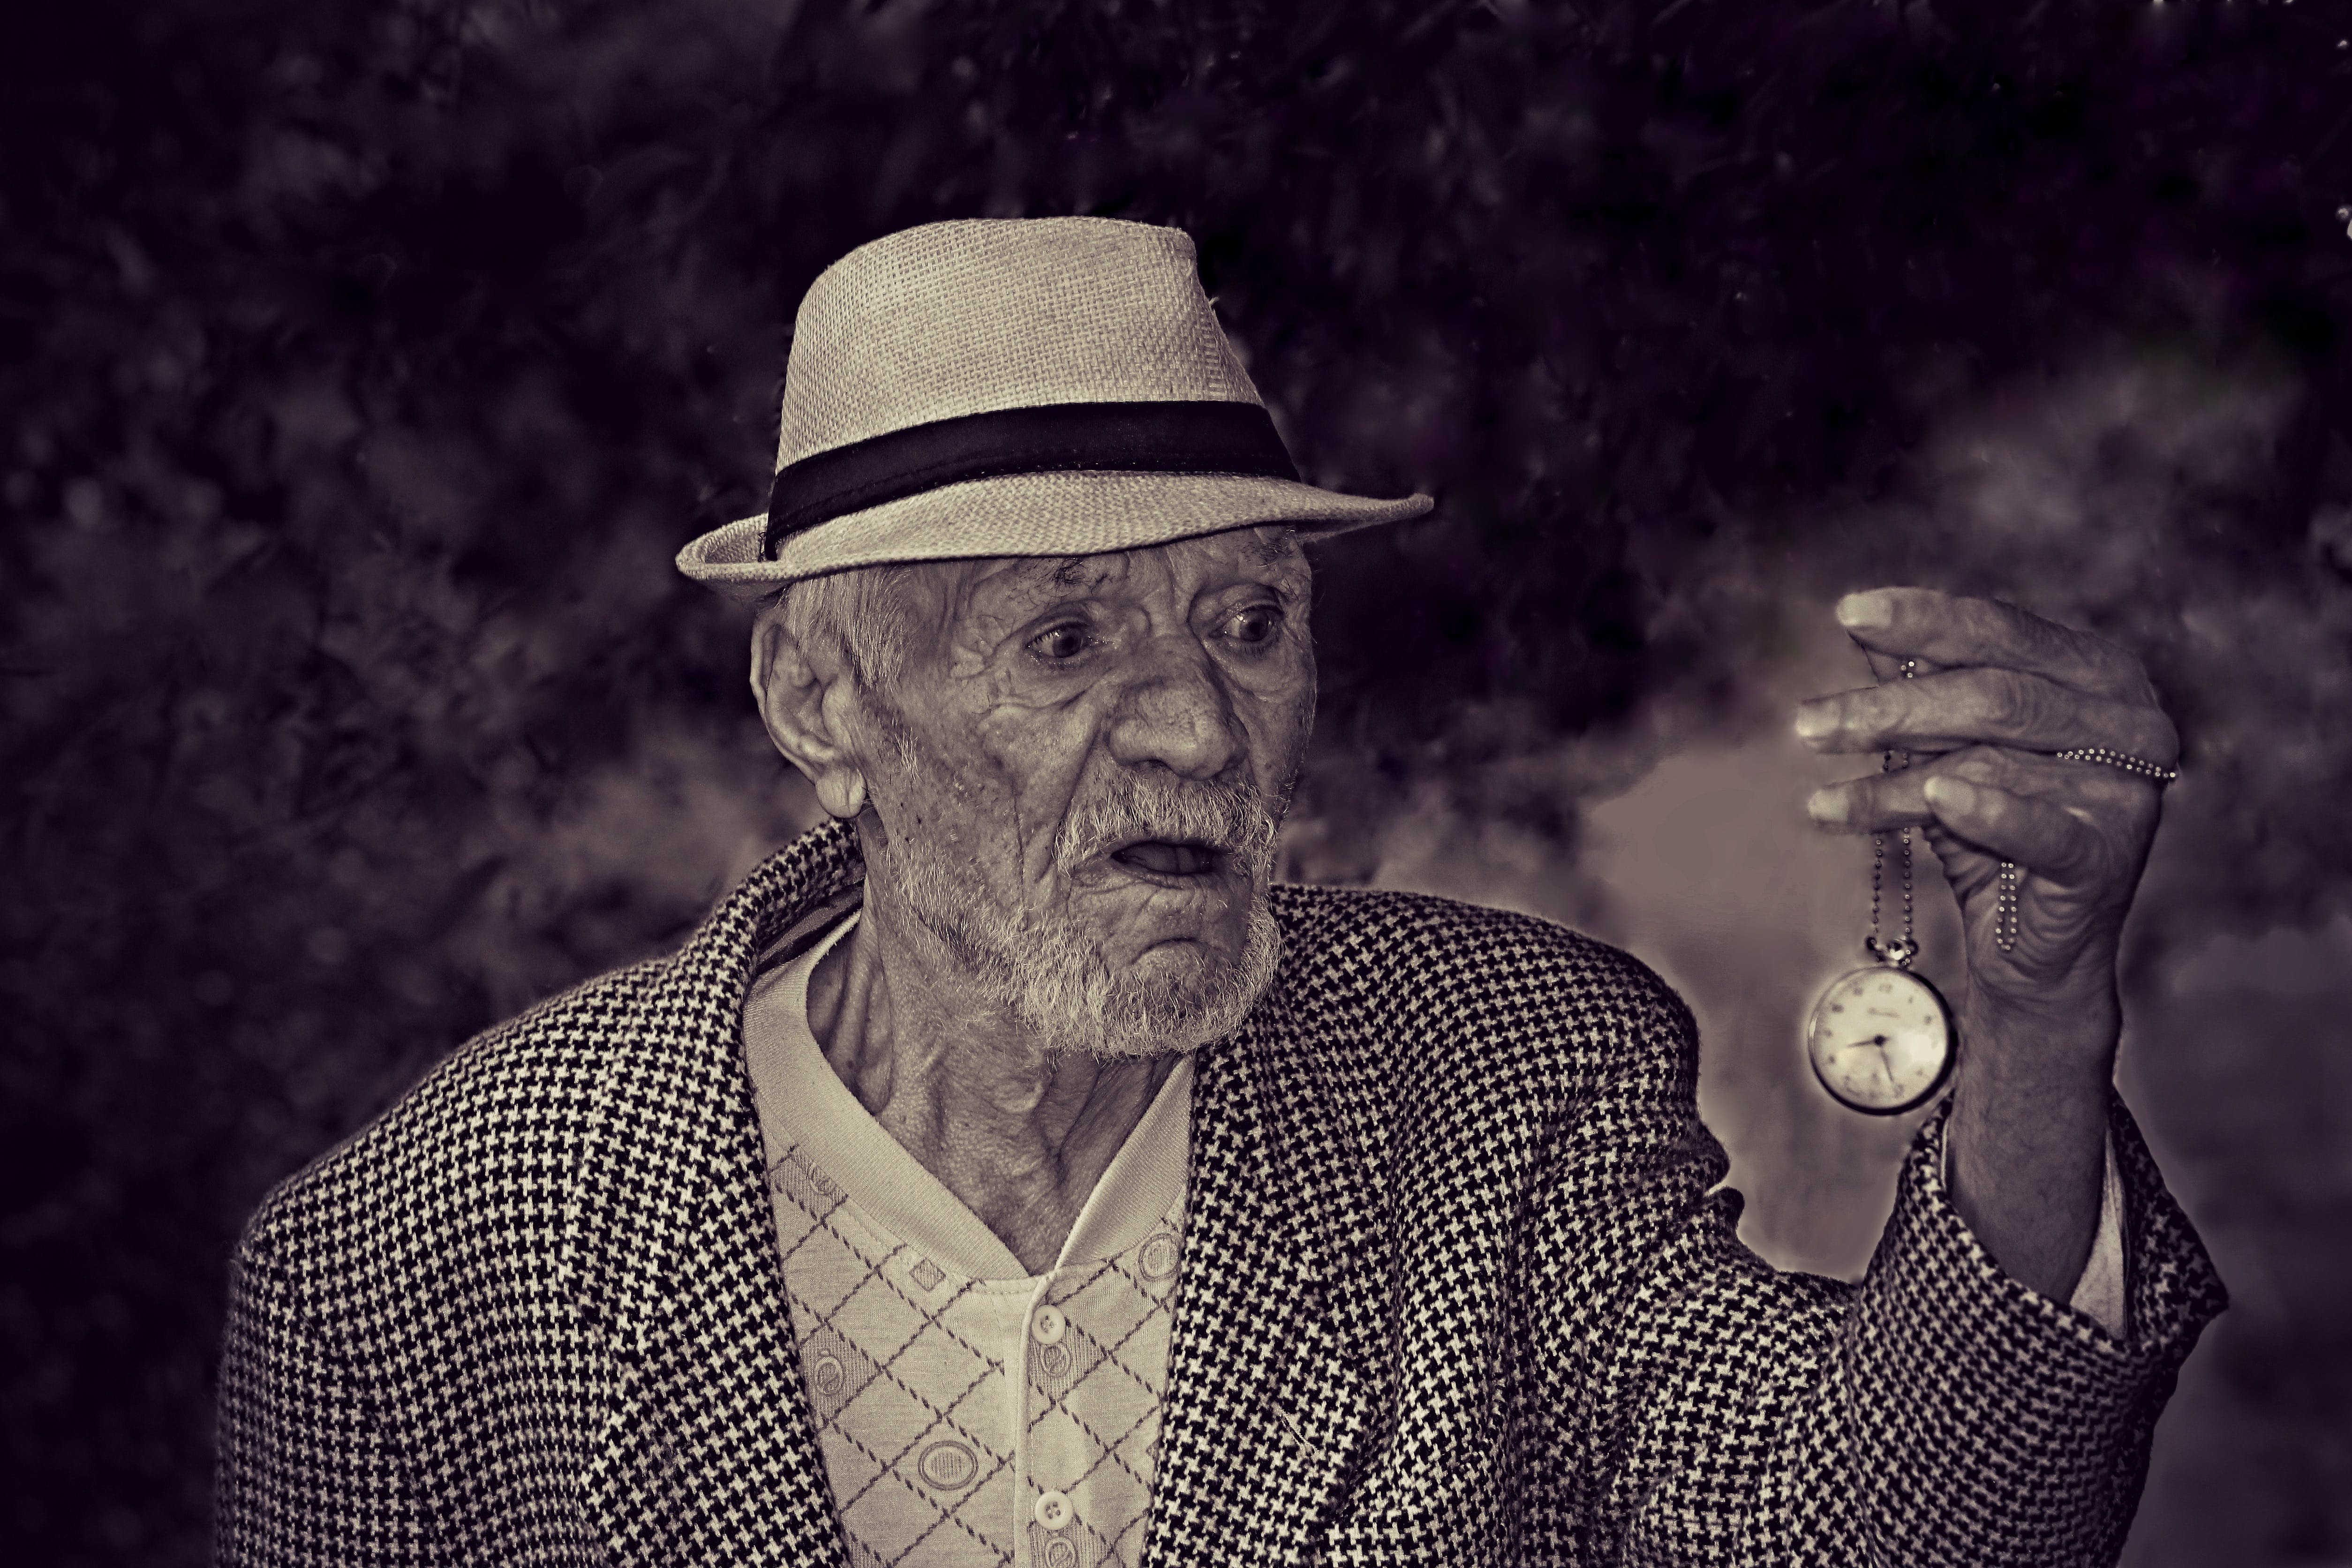 Man Holding Pocket Watch in Grayscale